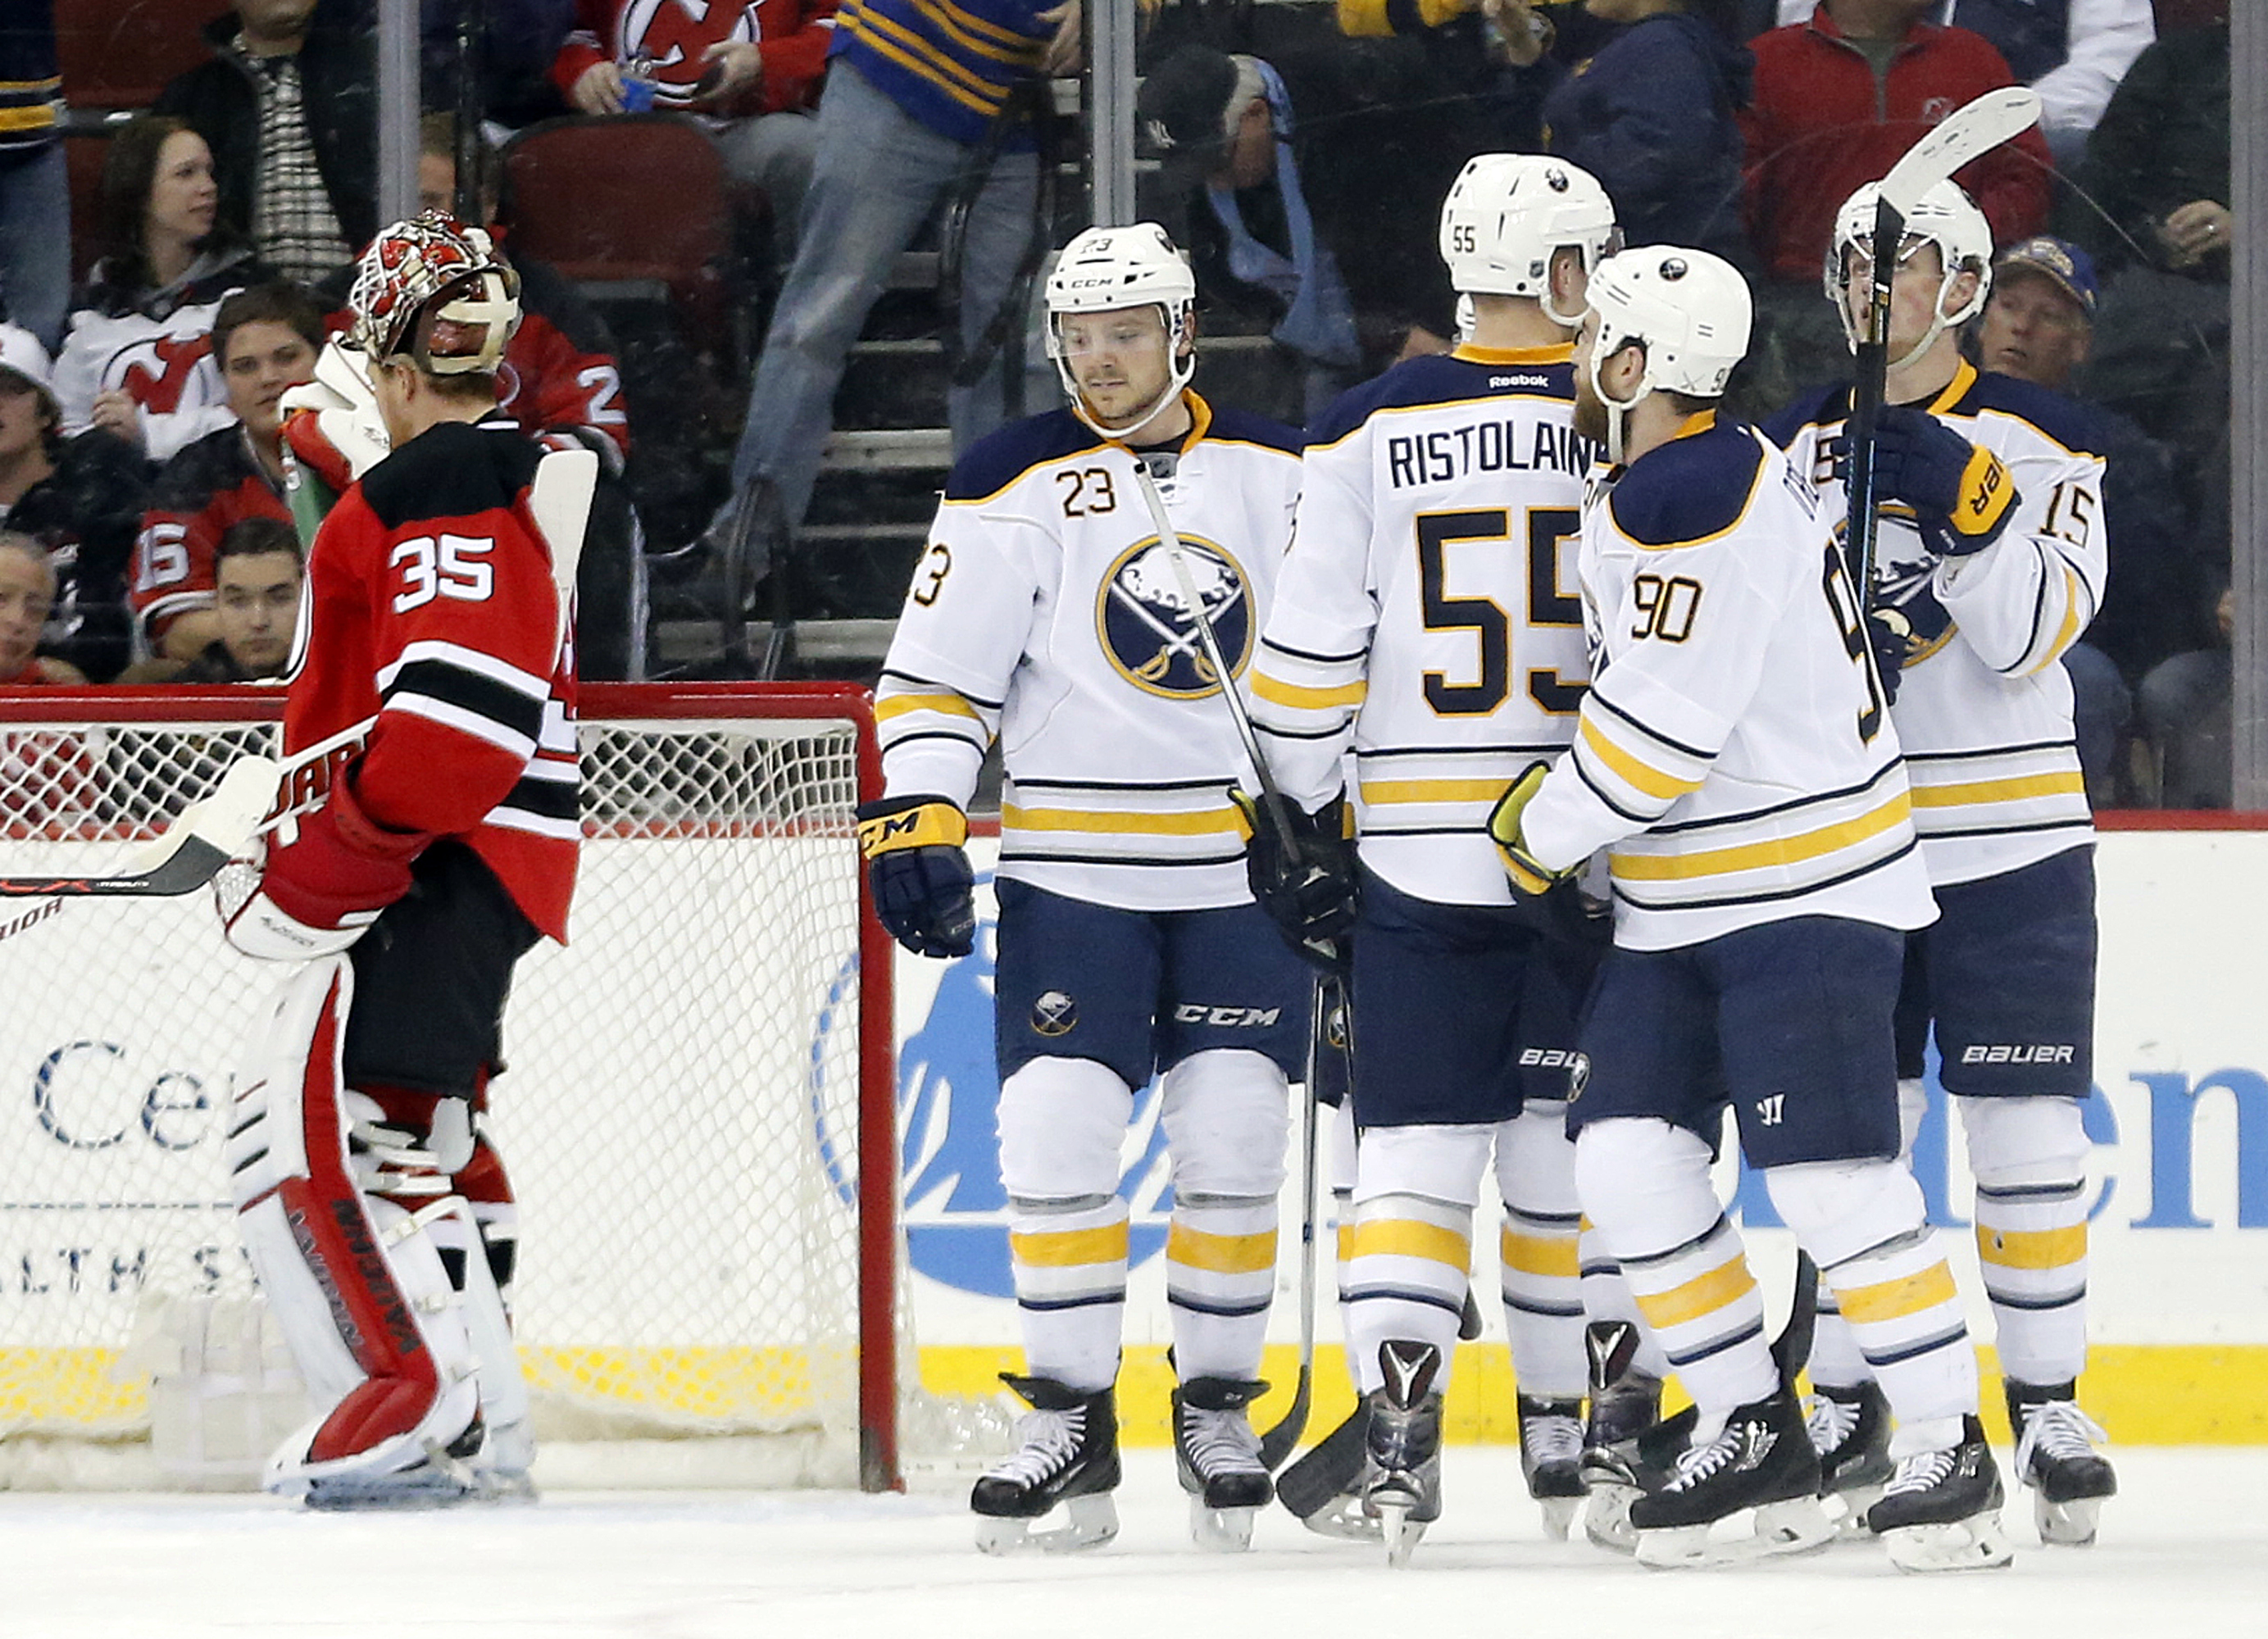 Buffalo Sabres players celebrate a goal by Ryan O'Reilly (90) against the New Jersey Devils during the second period of an NHL hockey game, Tuesday, April 5, 2016, in Newark, N.J. (AP Photo/Julio Cortez)